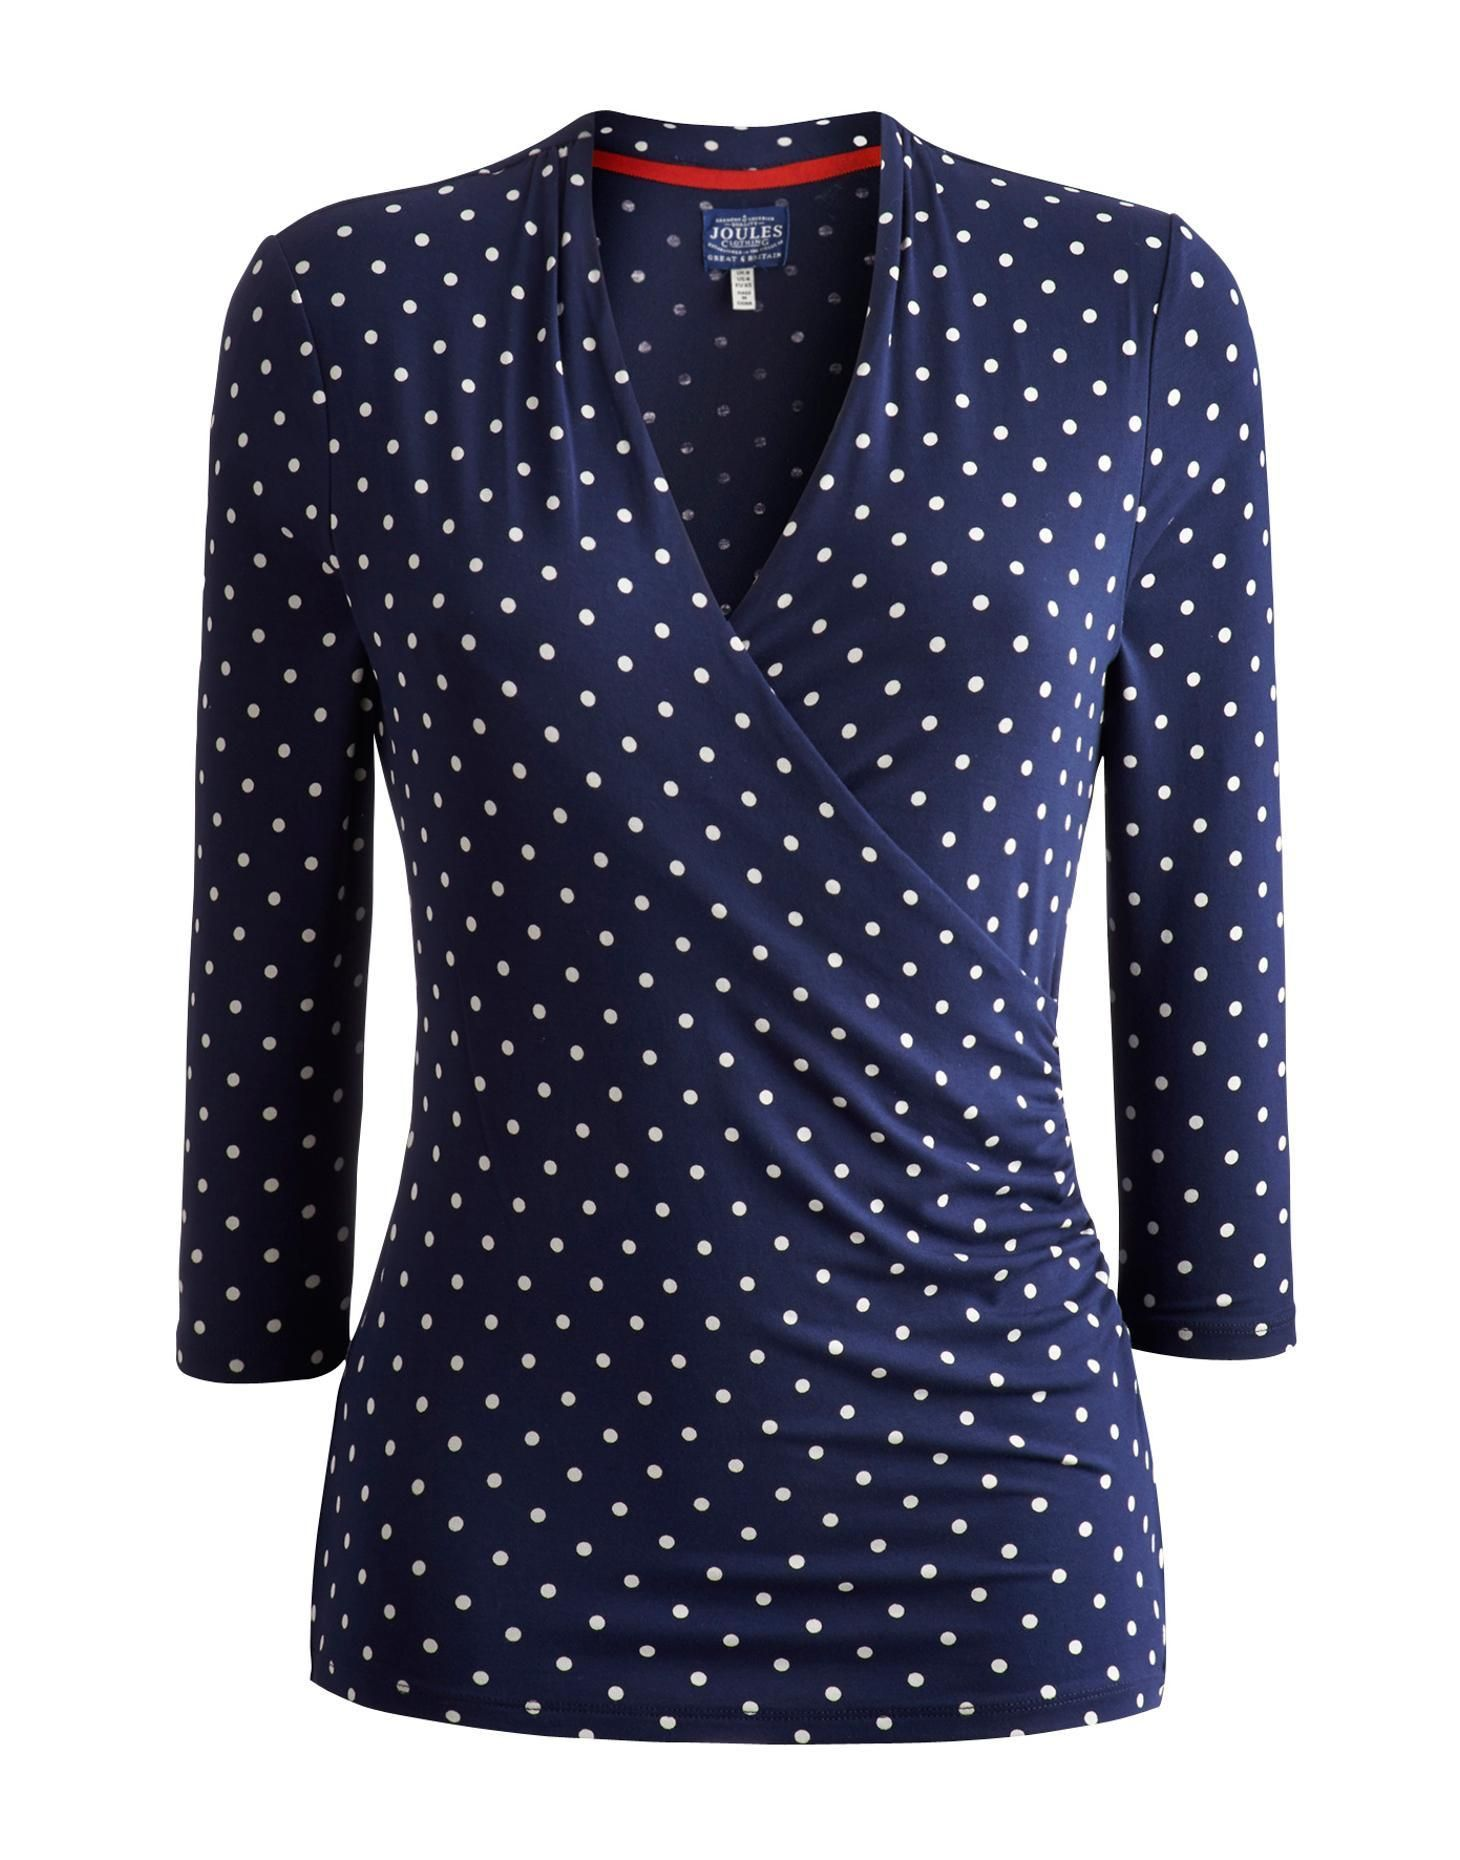 503d8def33d0b0 Joules Womens Fixed Wrap Jersey Top, French Navy Spot.   Blouses ...